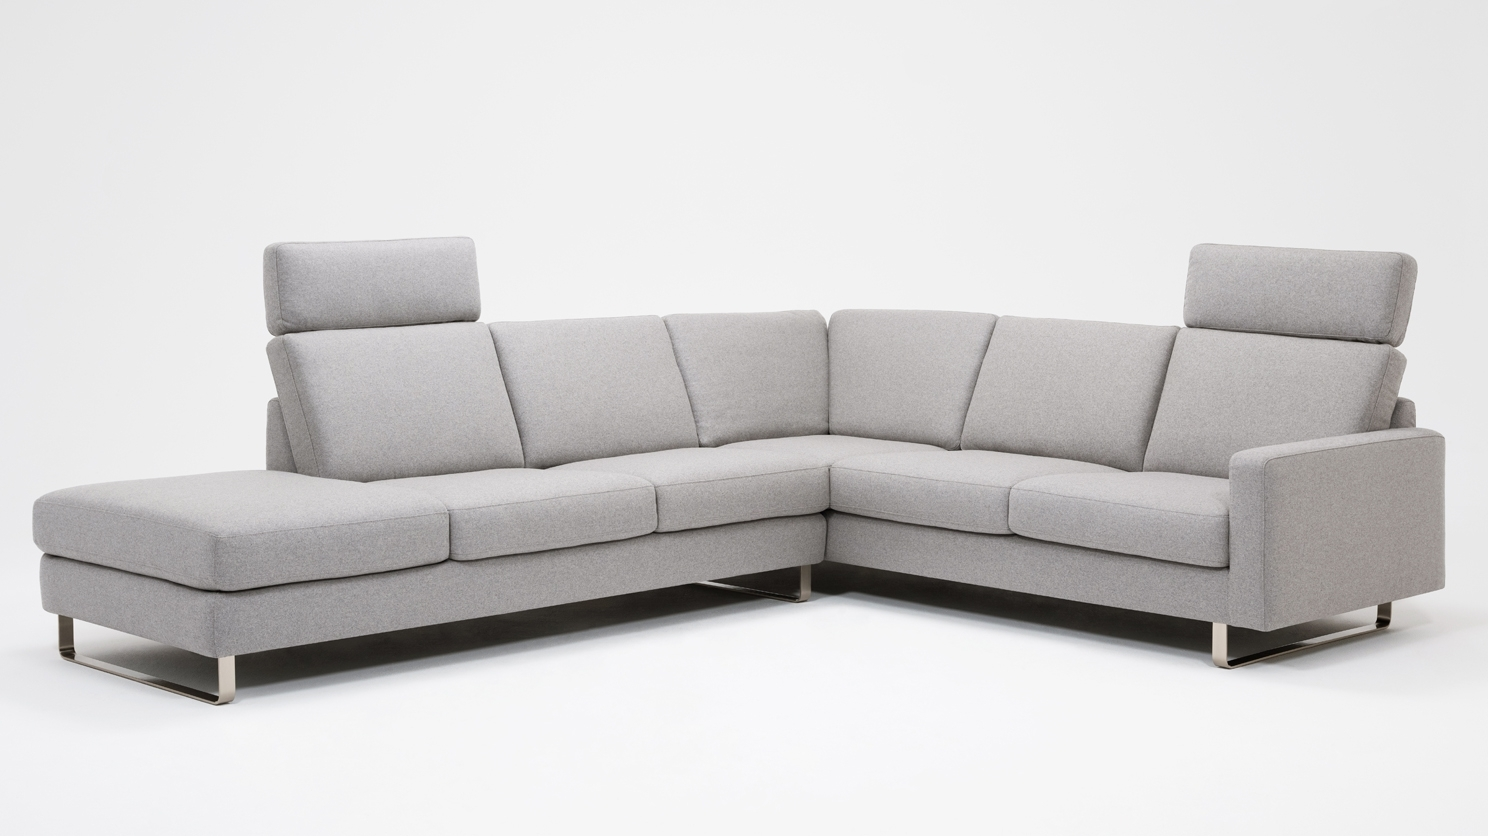 Oskar 2 Piece Sectional Sofa With Headrests – Fabric (View 12 of 20)